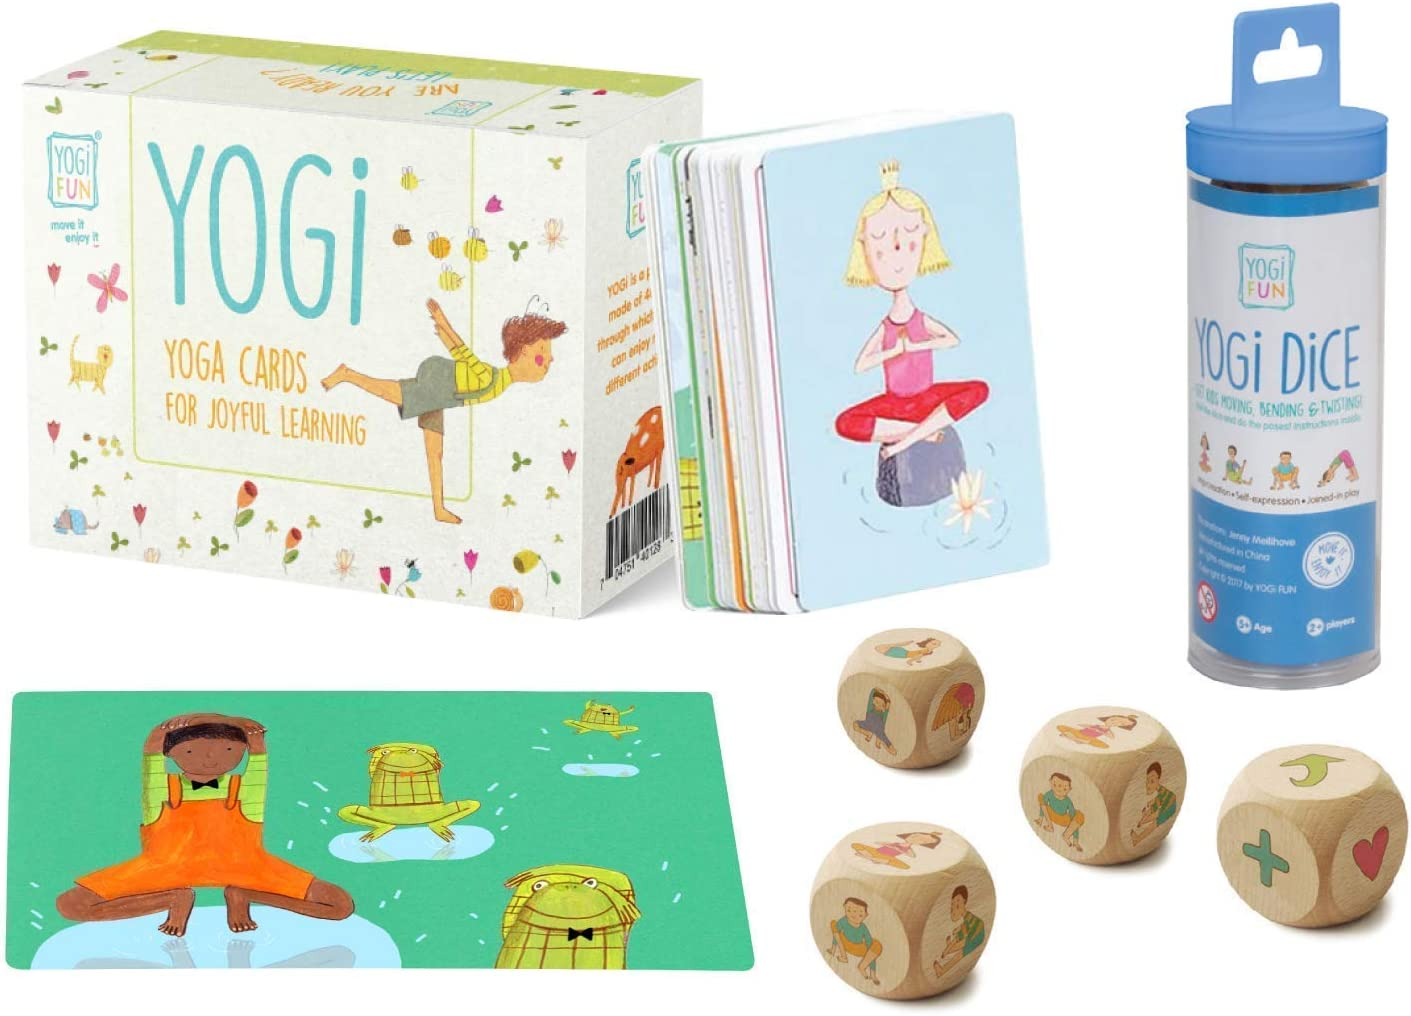 YOGi FUN Yoga Cards and Wooden Dice for Christmas for Children, Boys and Girls